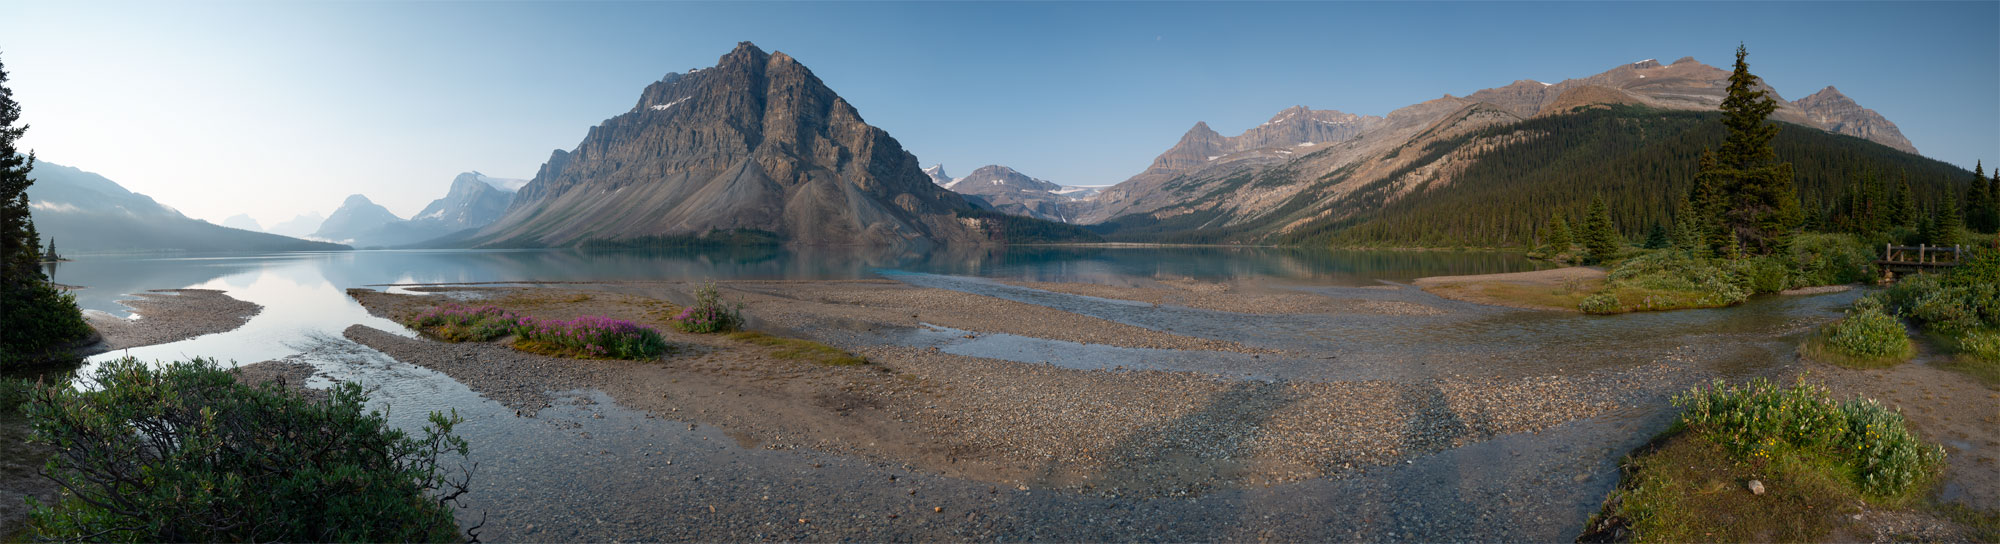 Panorama vom Bow Lake in Banff